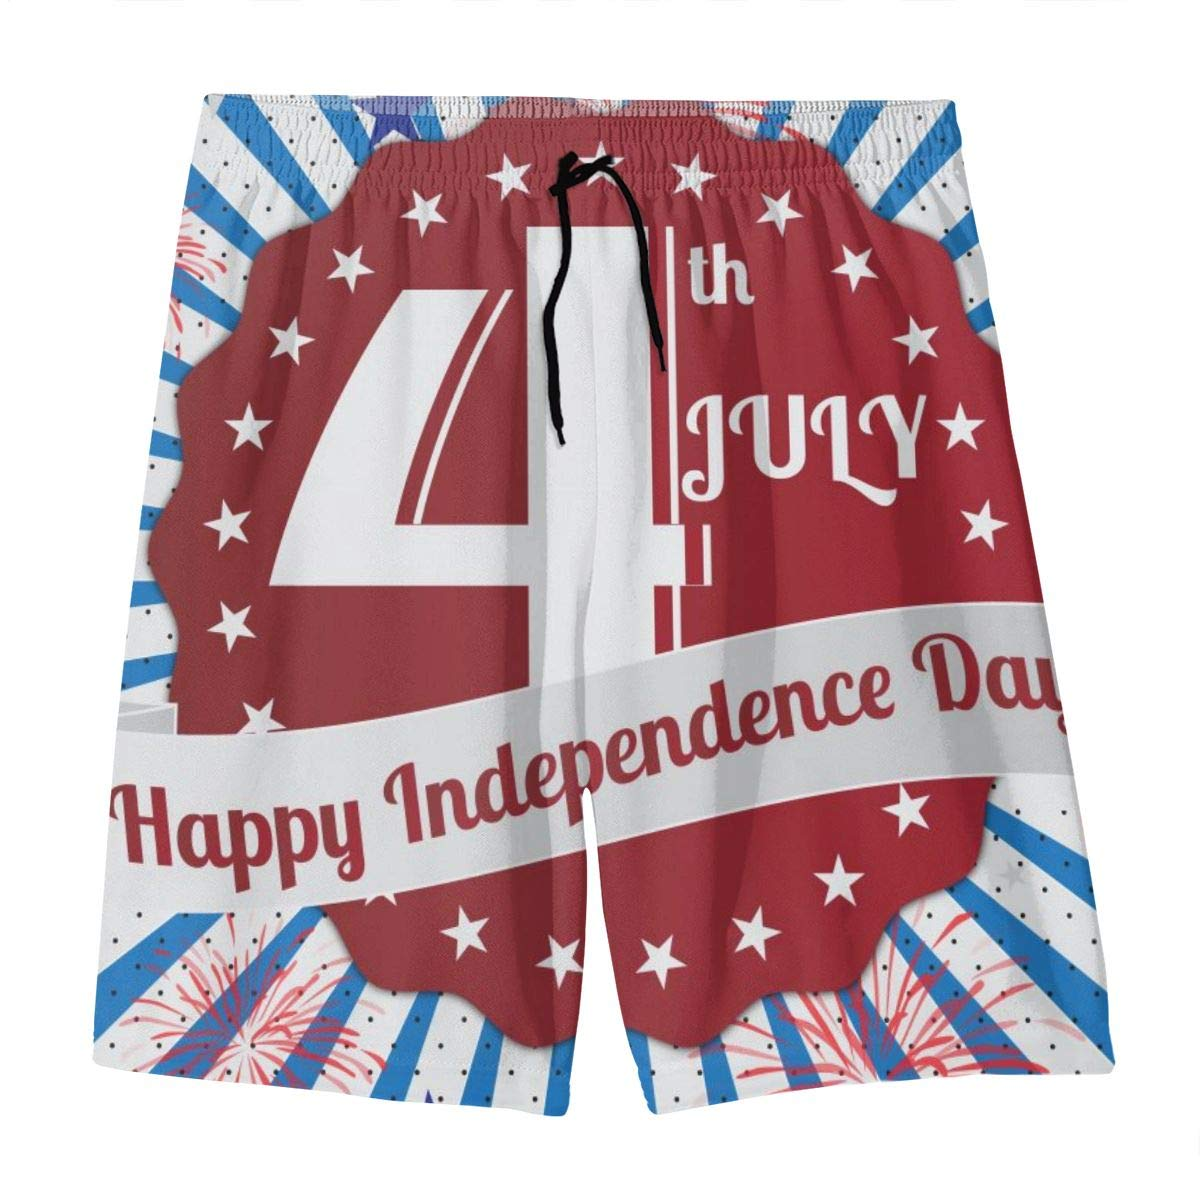 4th July Happy Independence Day Teen Swim Trunks Bathing Suit Shorts Board Beach